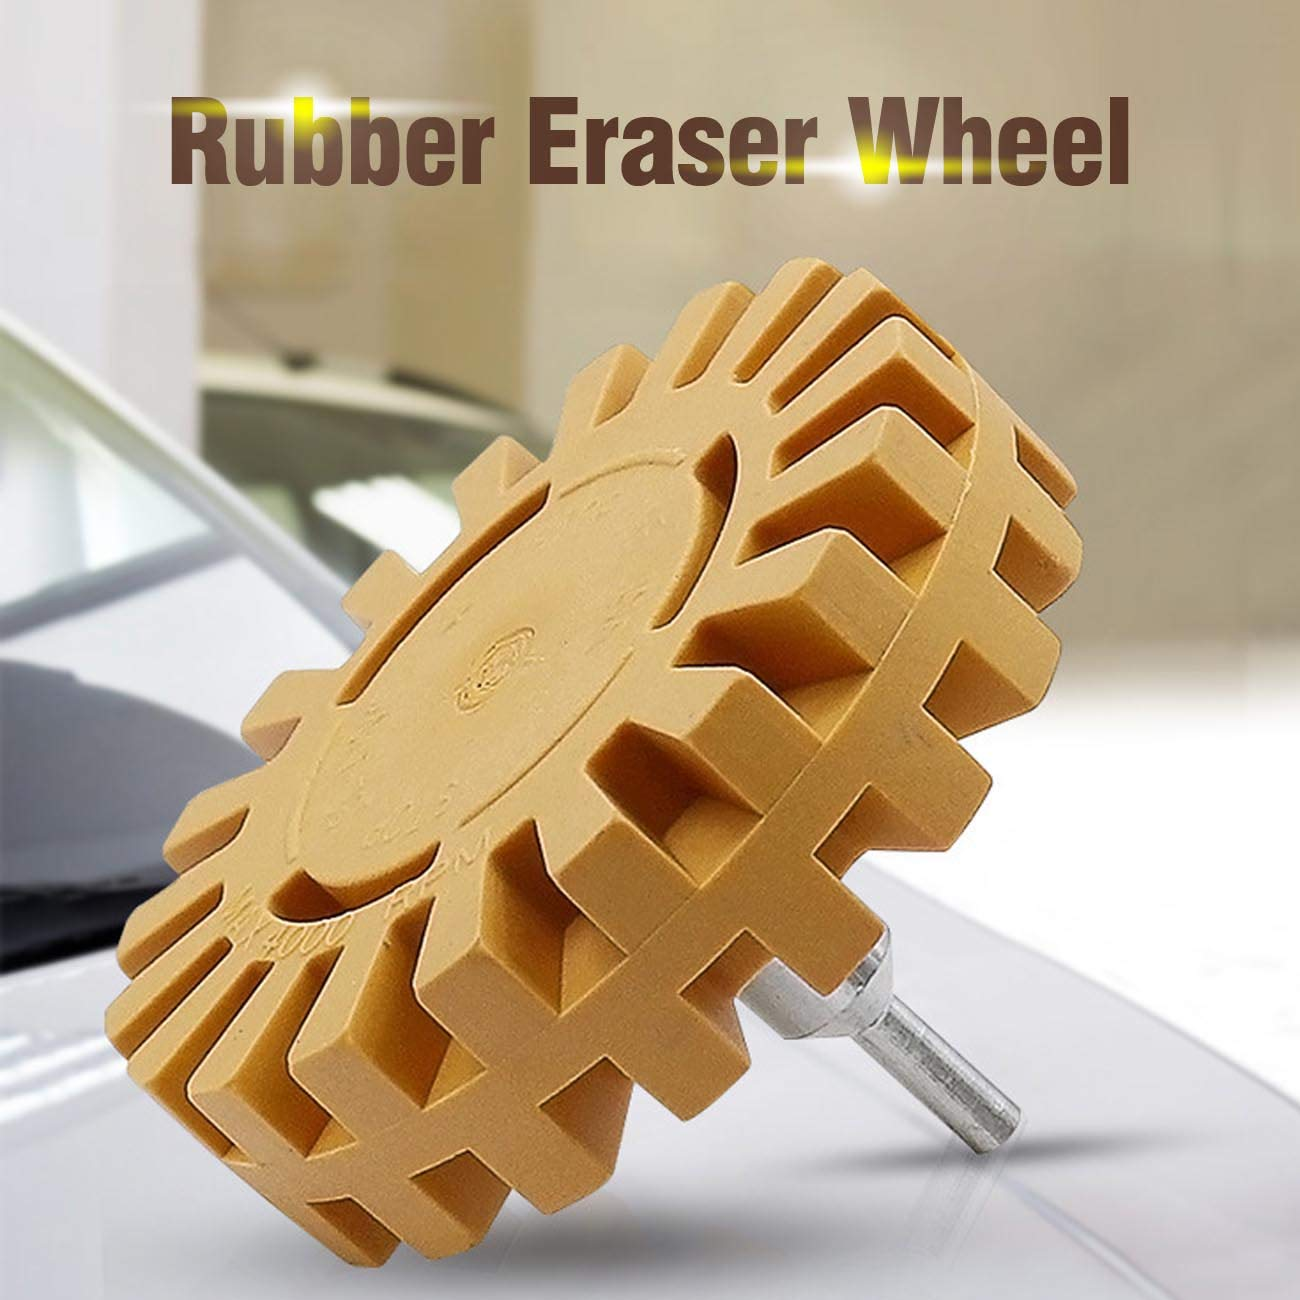 Cars Adhesive Vinyl Decals Vankcp 4 inch Eraser Wheel Decal Removal Eraser Wheel Tool Kit Rubber Eraser Wheel for Removing Cars and Boats Stickers Pinstripes